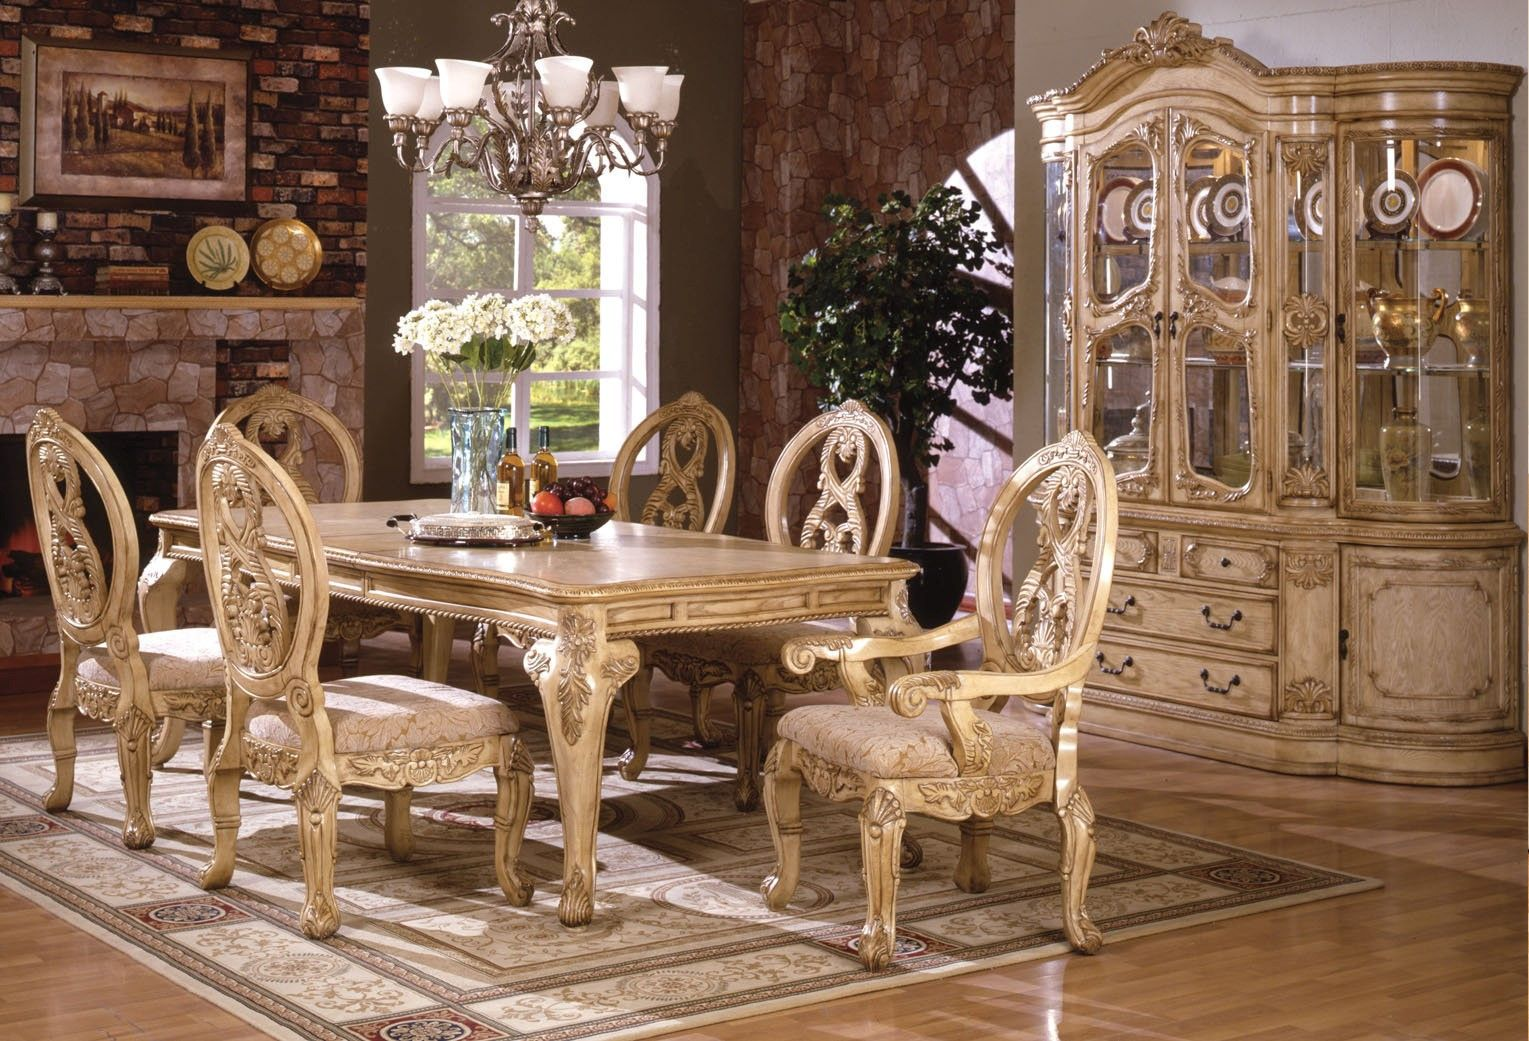 Explore Dining Table With Chairs Sets And More